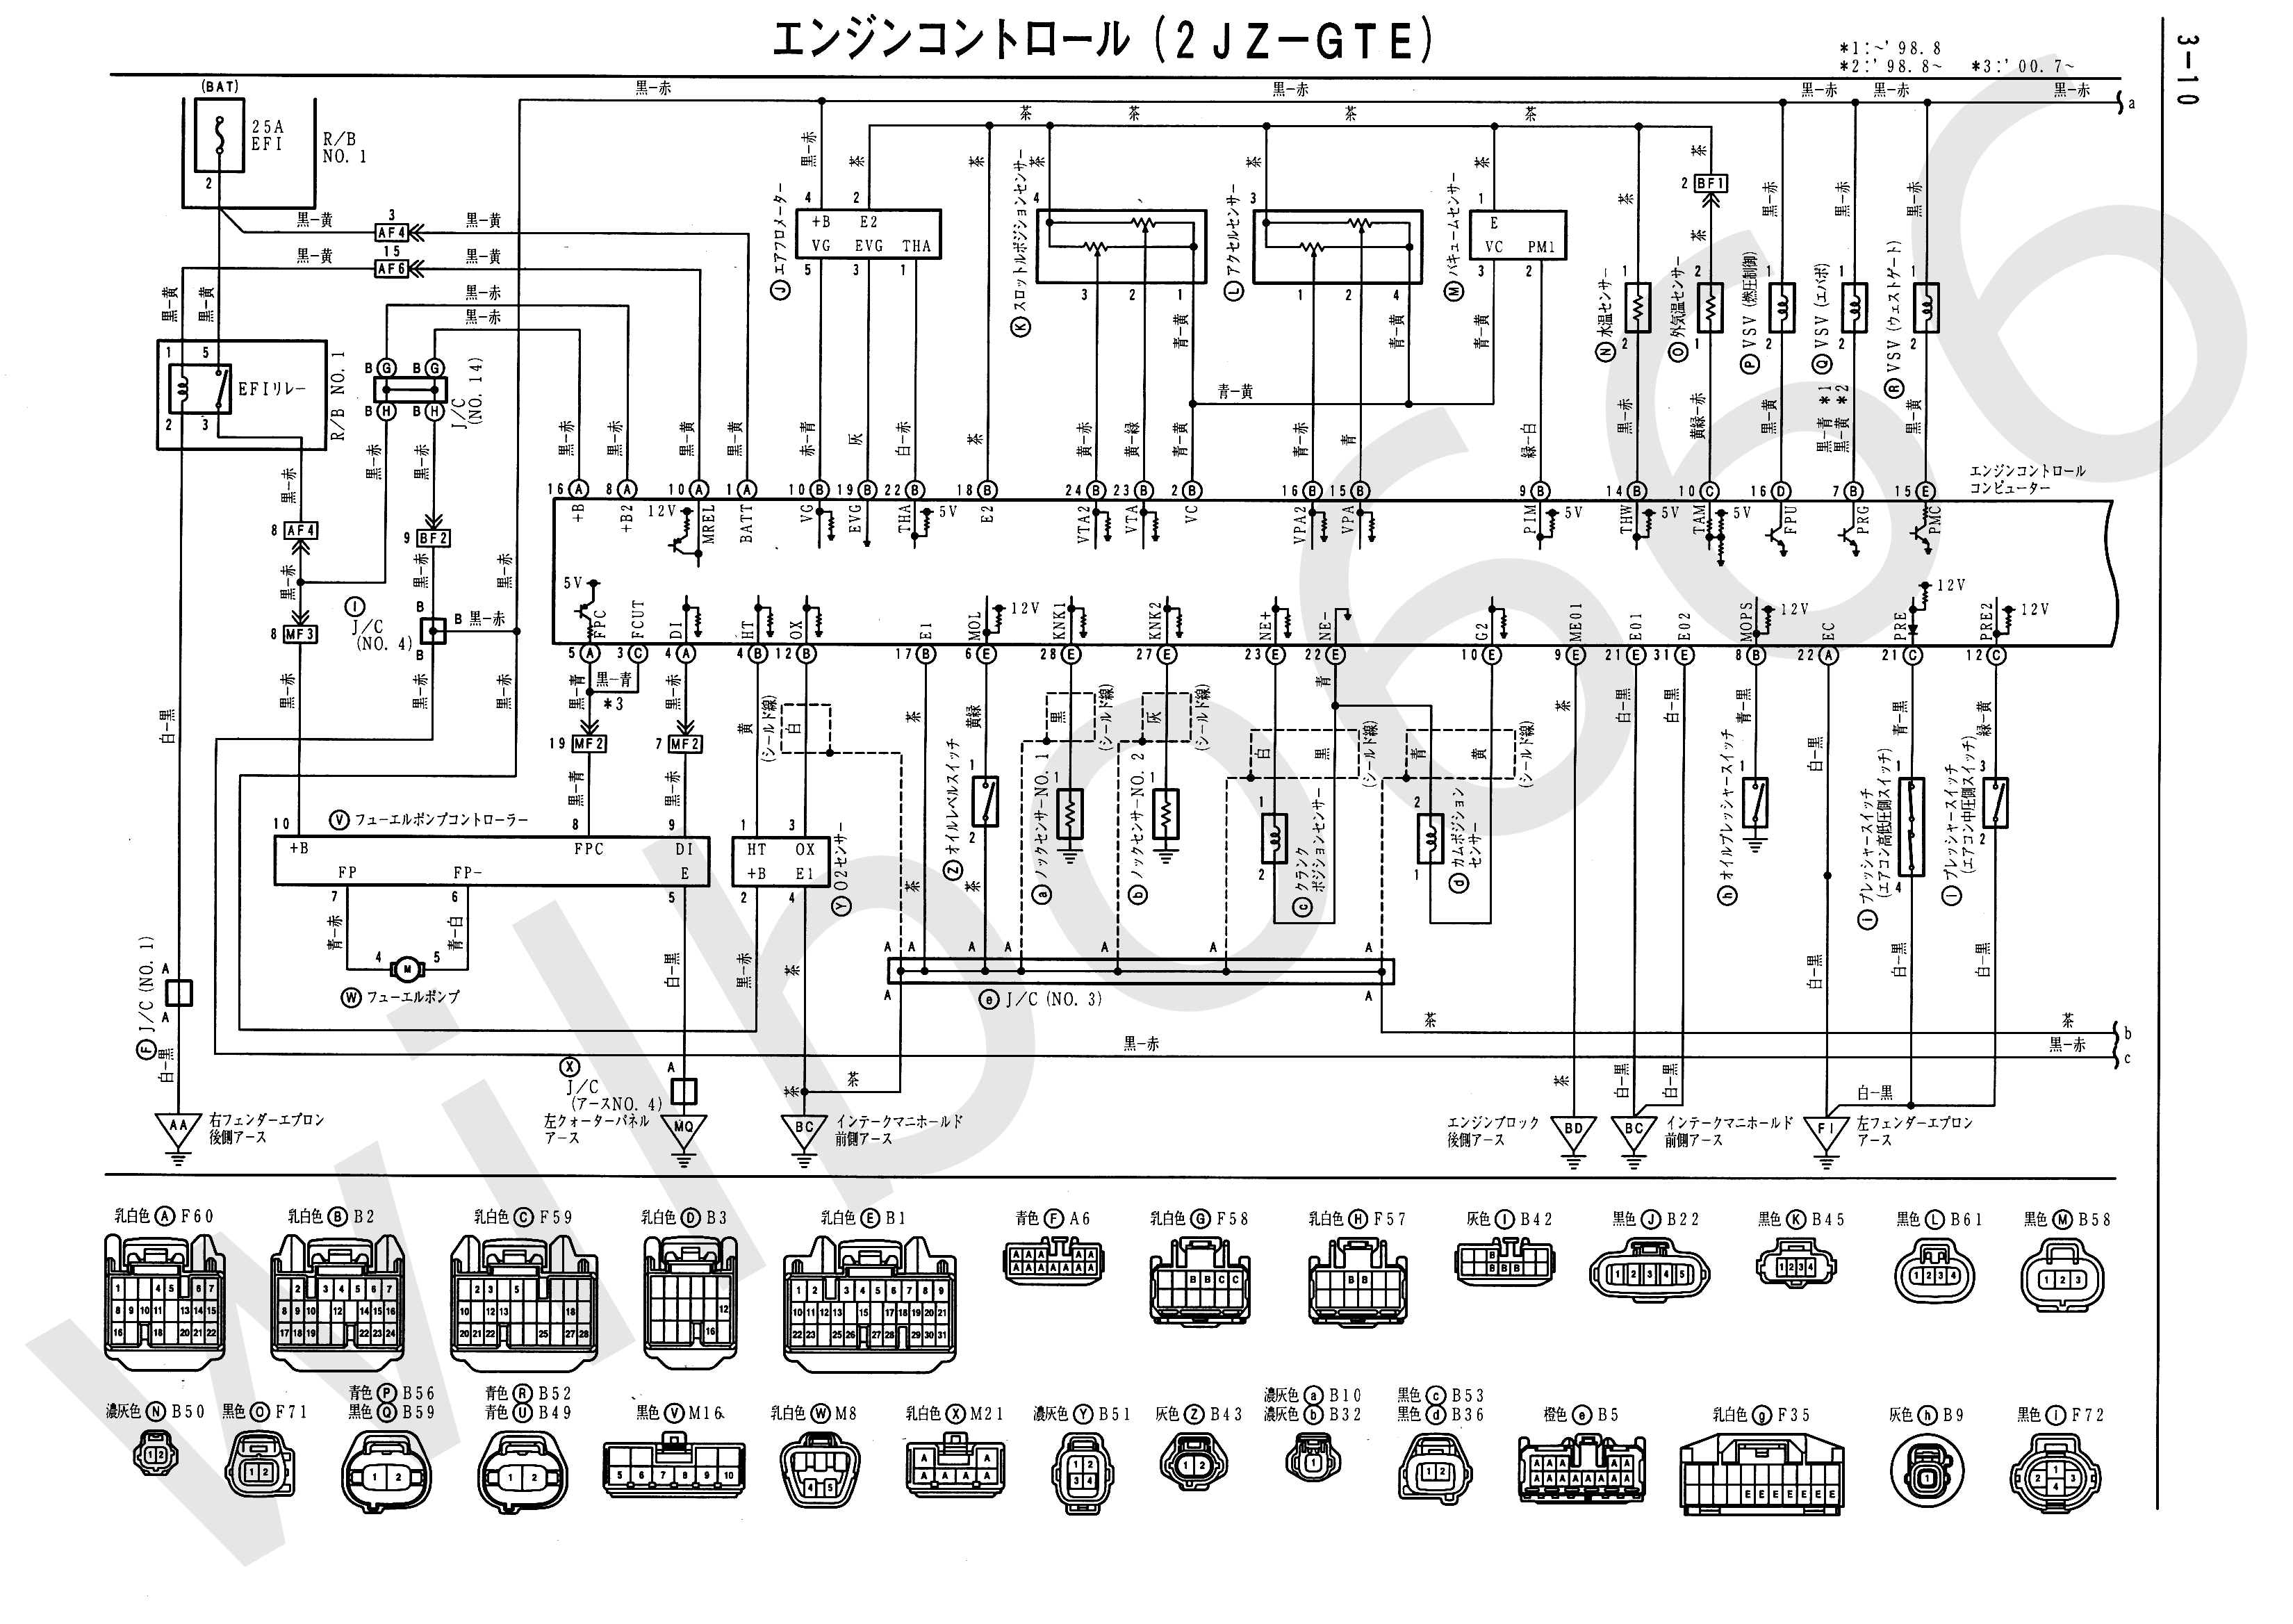 JZS161 Electrical Wiring Diagram 6748505 3 10 aristo wiring diagram wiring a non computer 700r4 \u2022 free wiring 1jz vvti wiring diagram at couponss.co